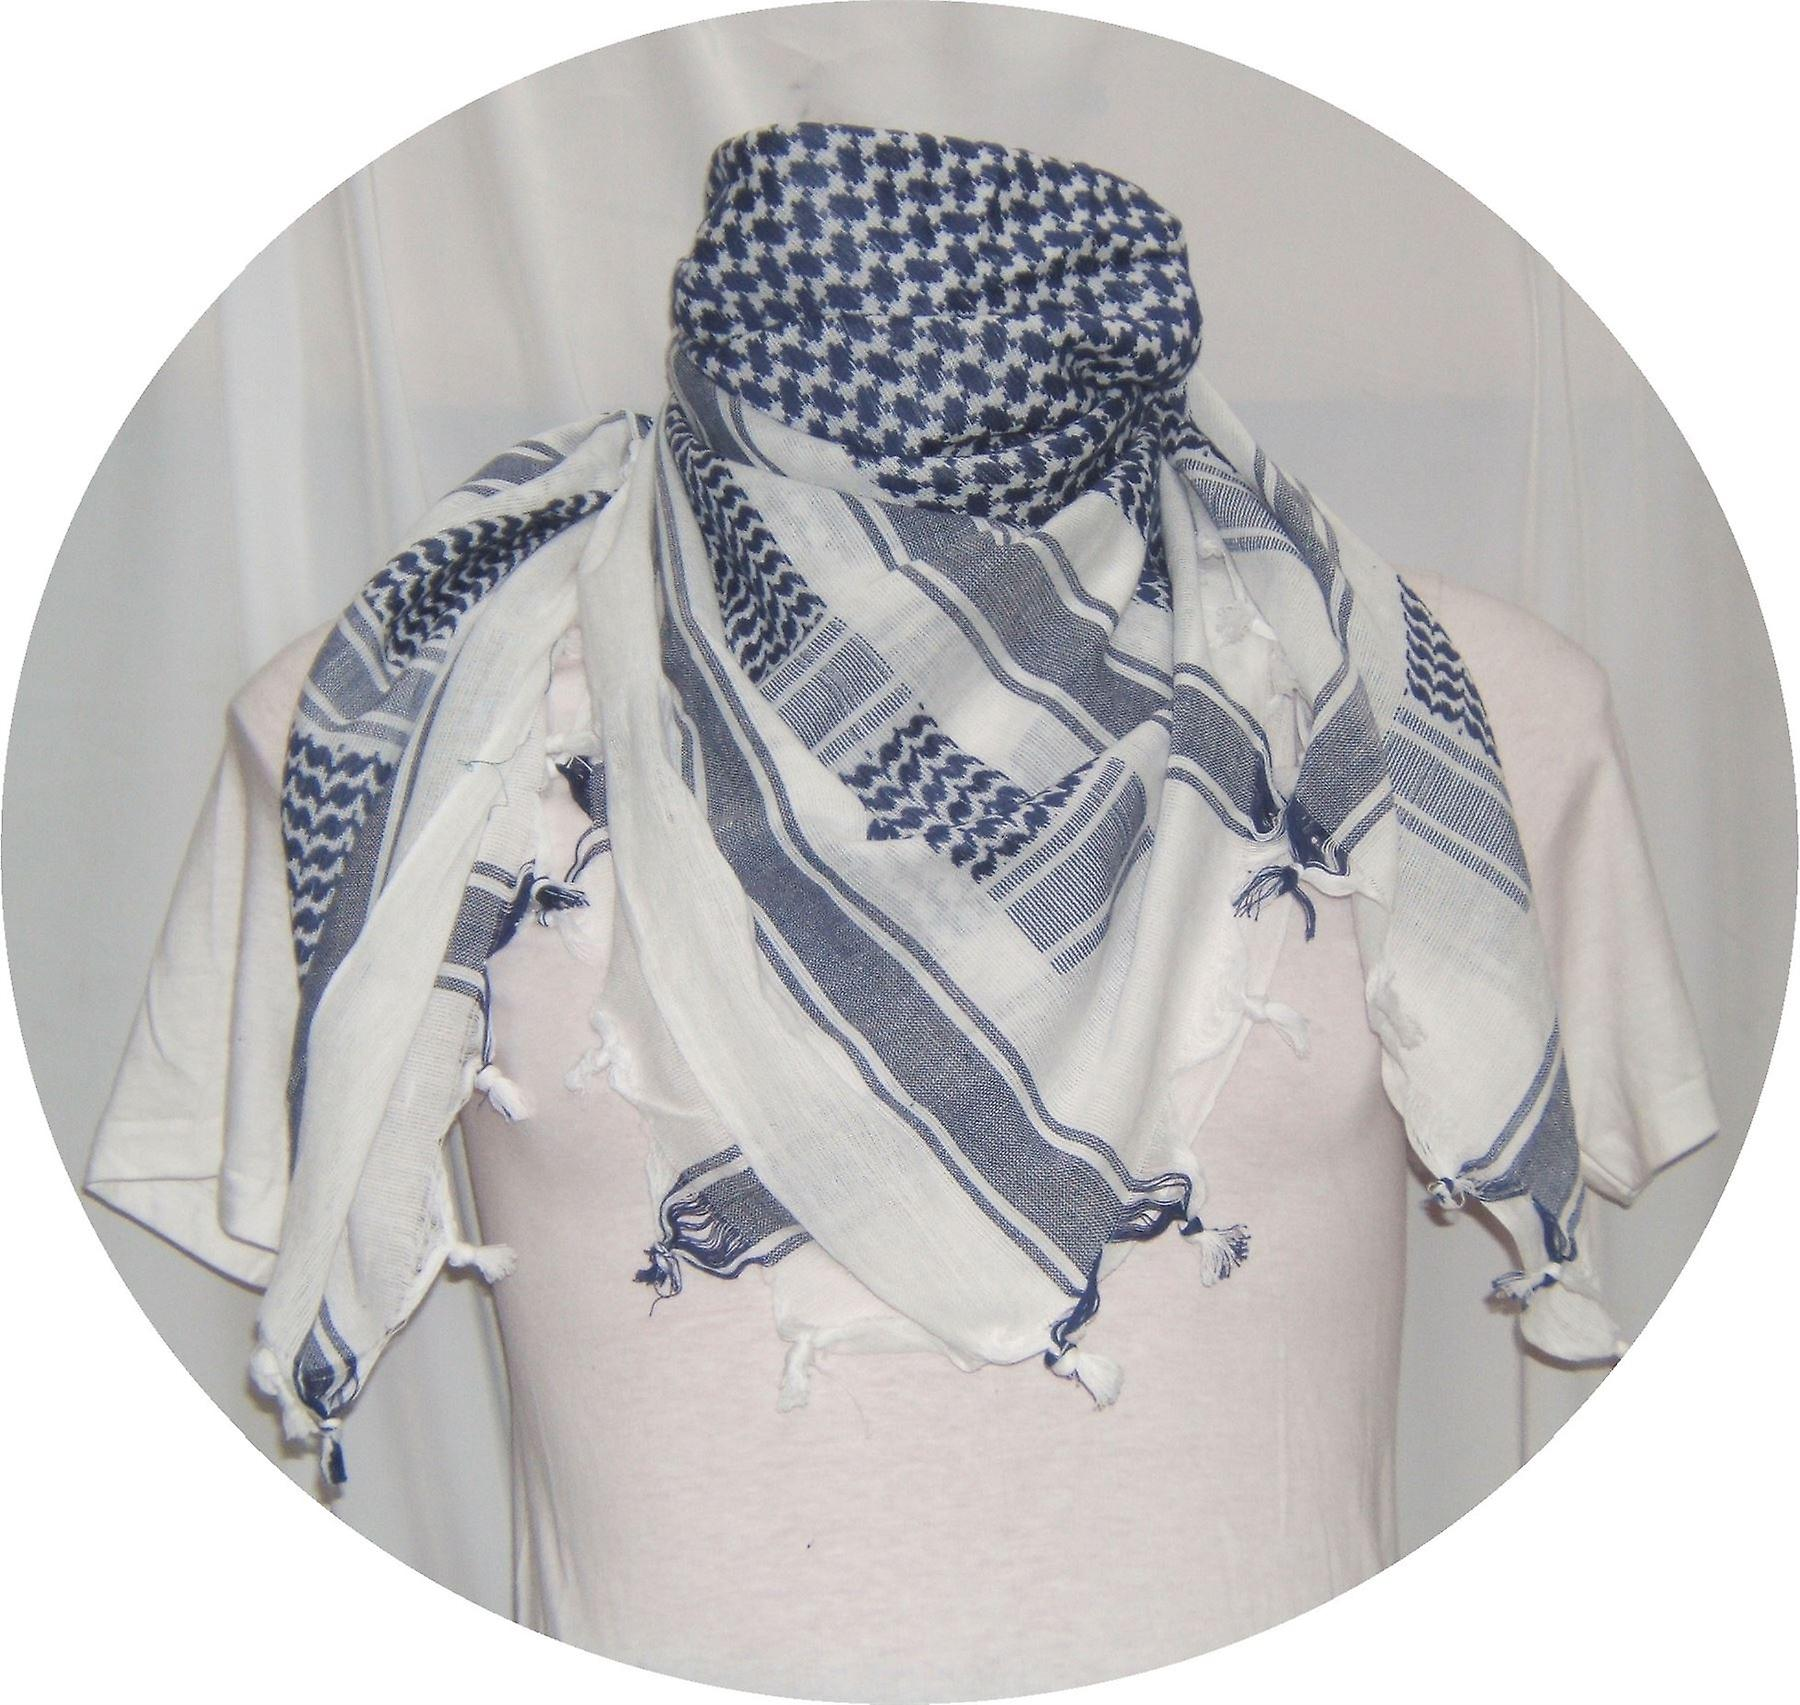 Shemagh (Keffiyeh) Scarf: Why I Travel With One